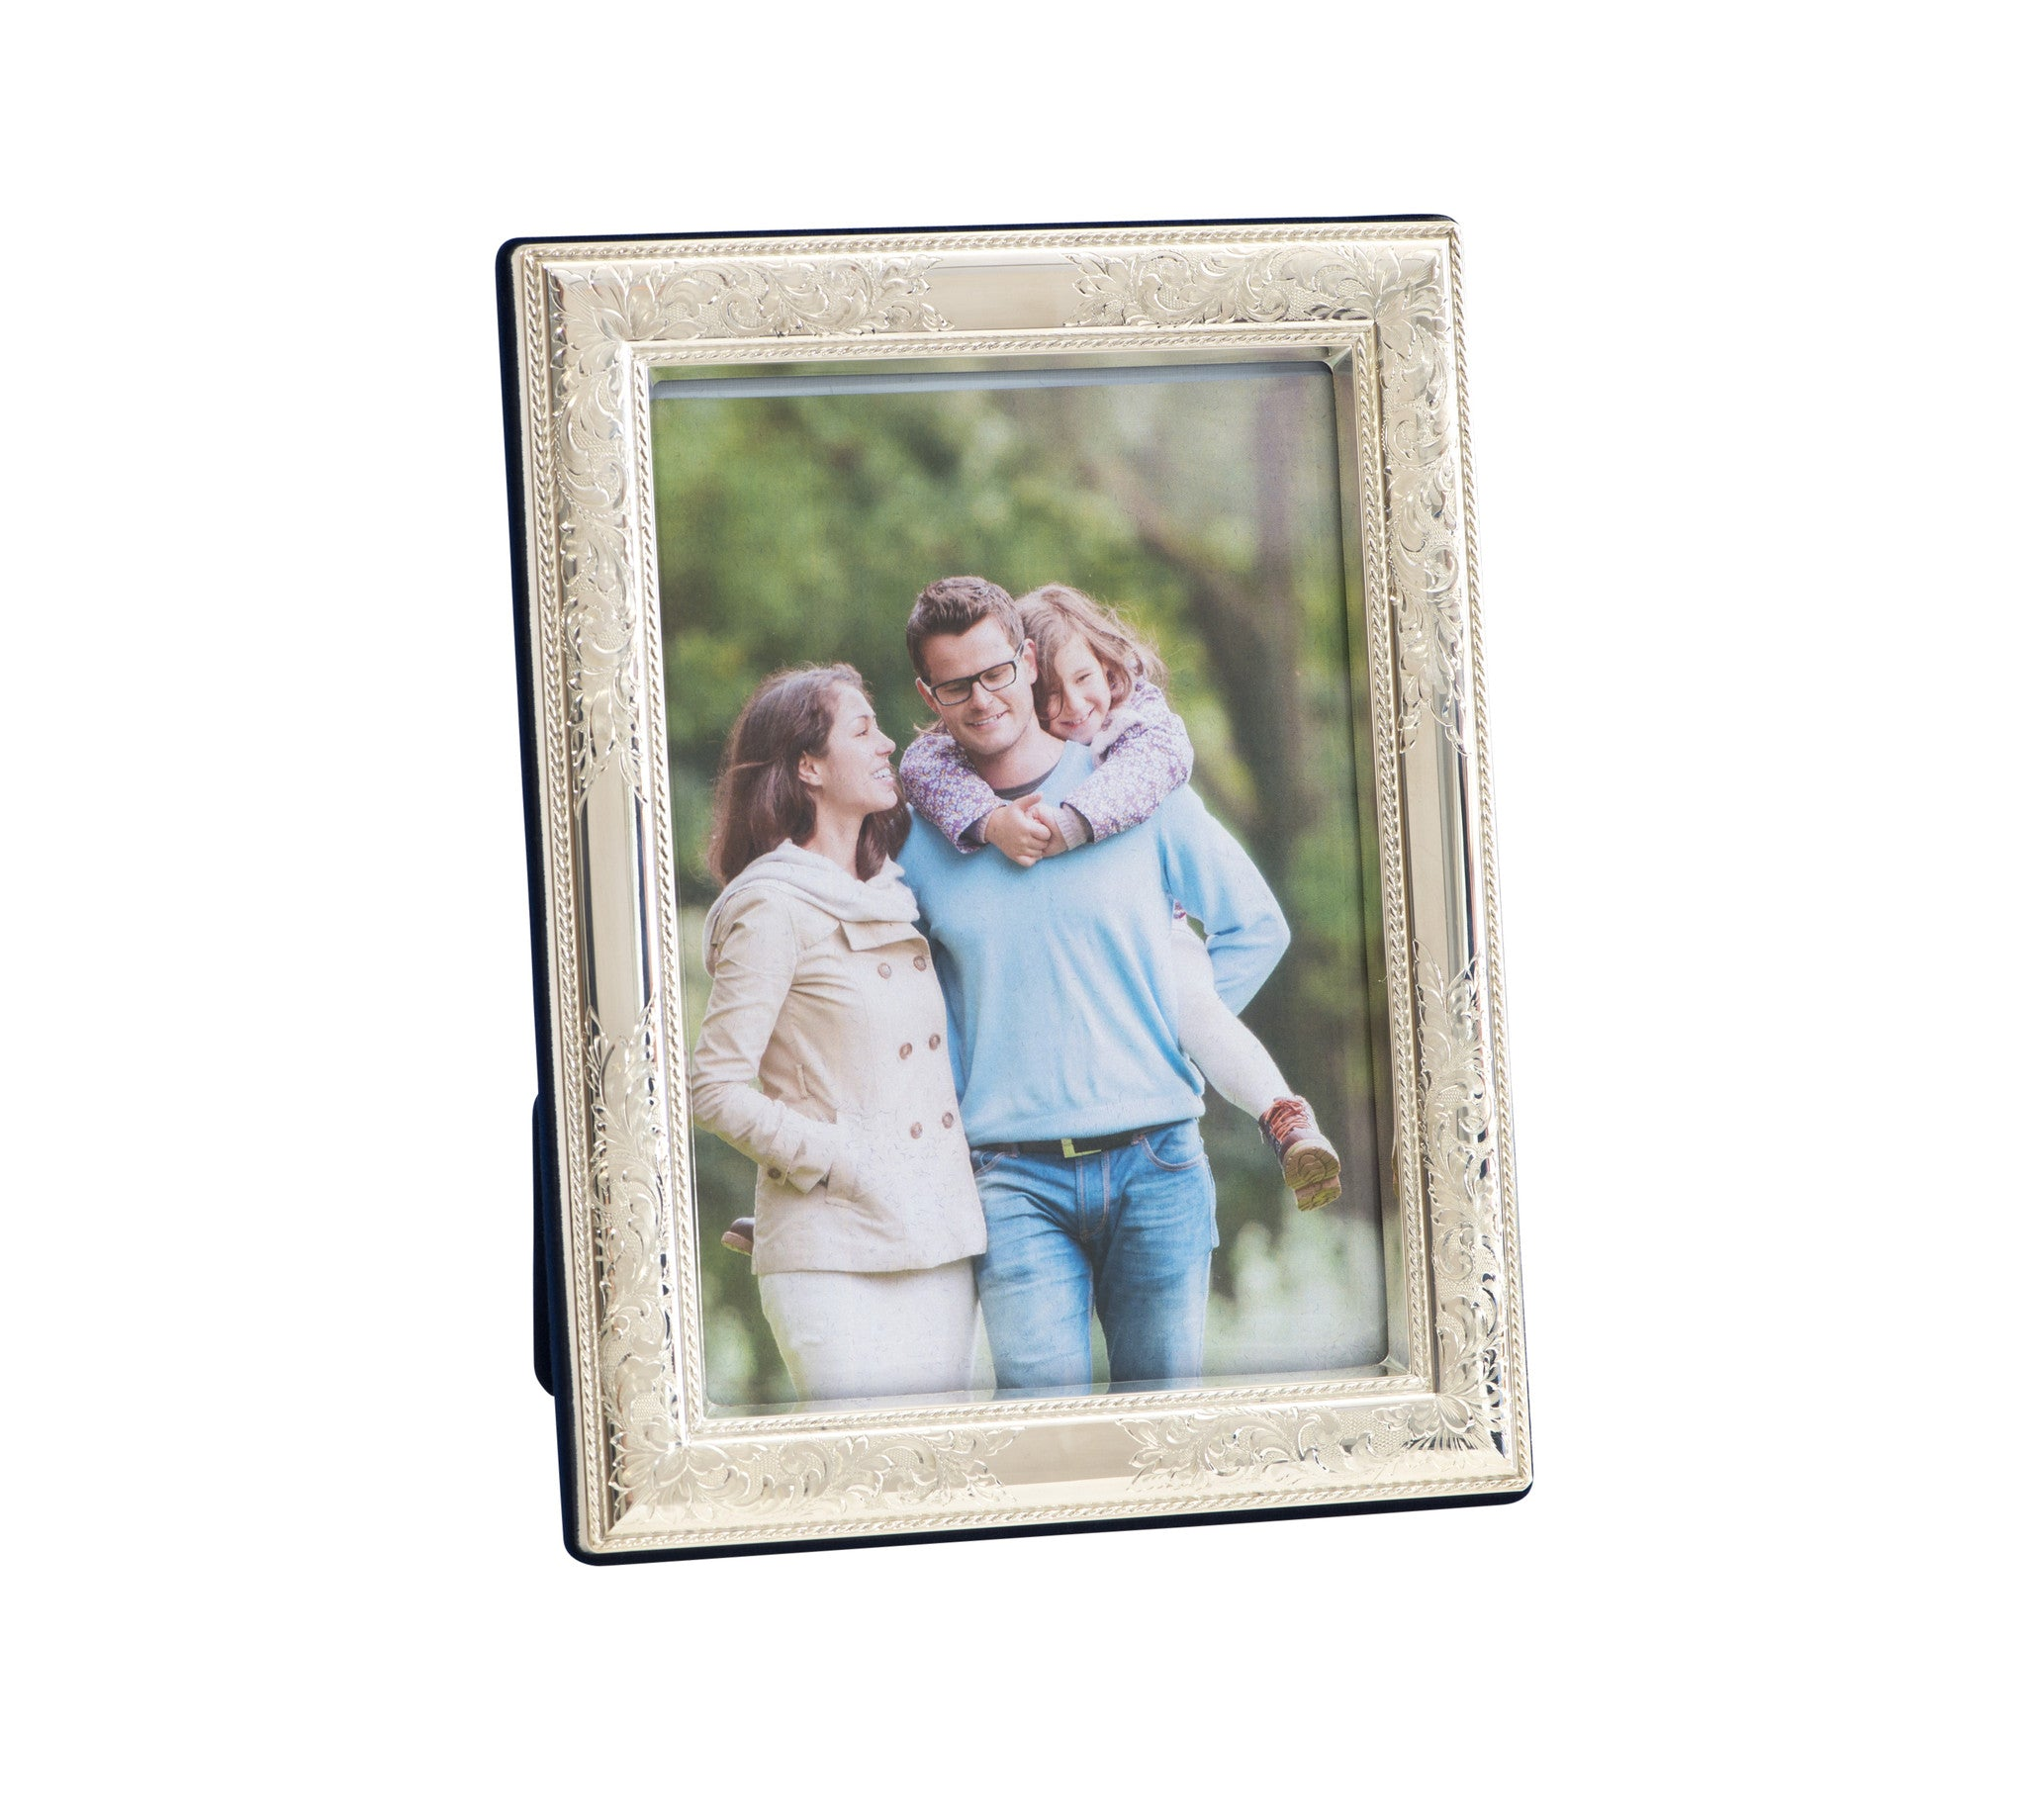 Nostalgia 5 x 7 Sterling Silver Picture Frame